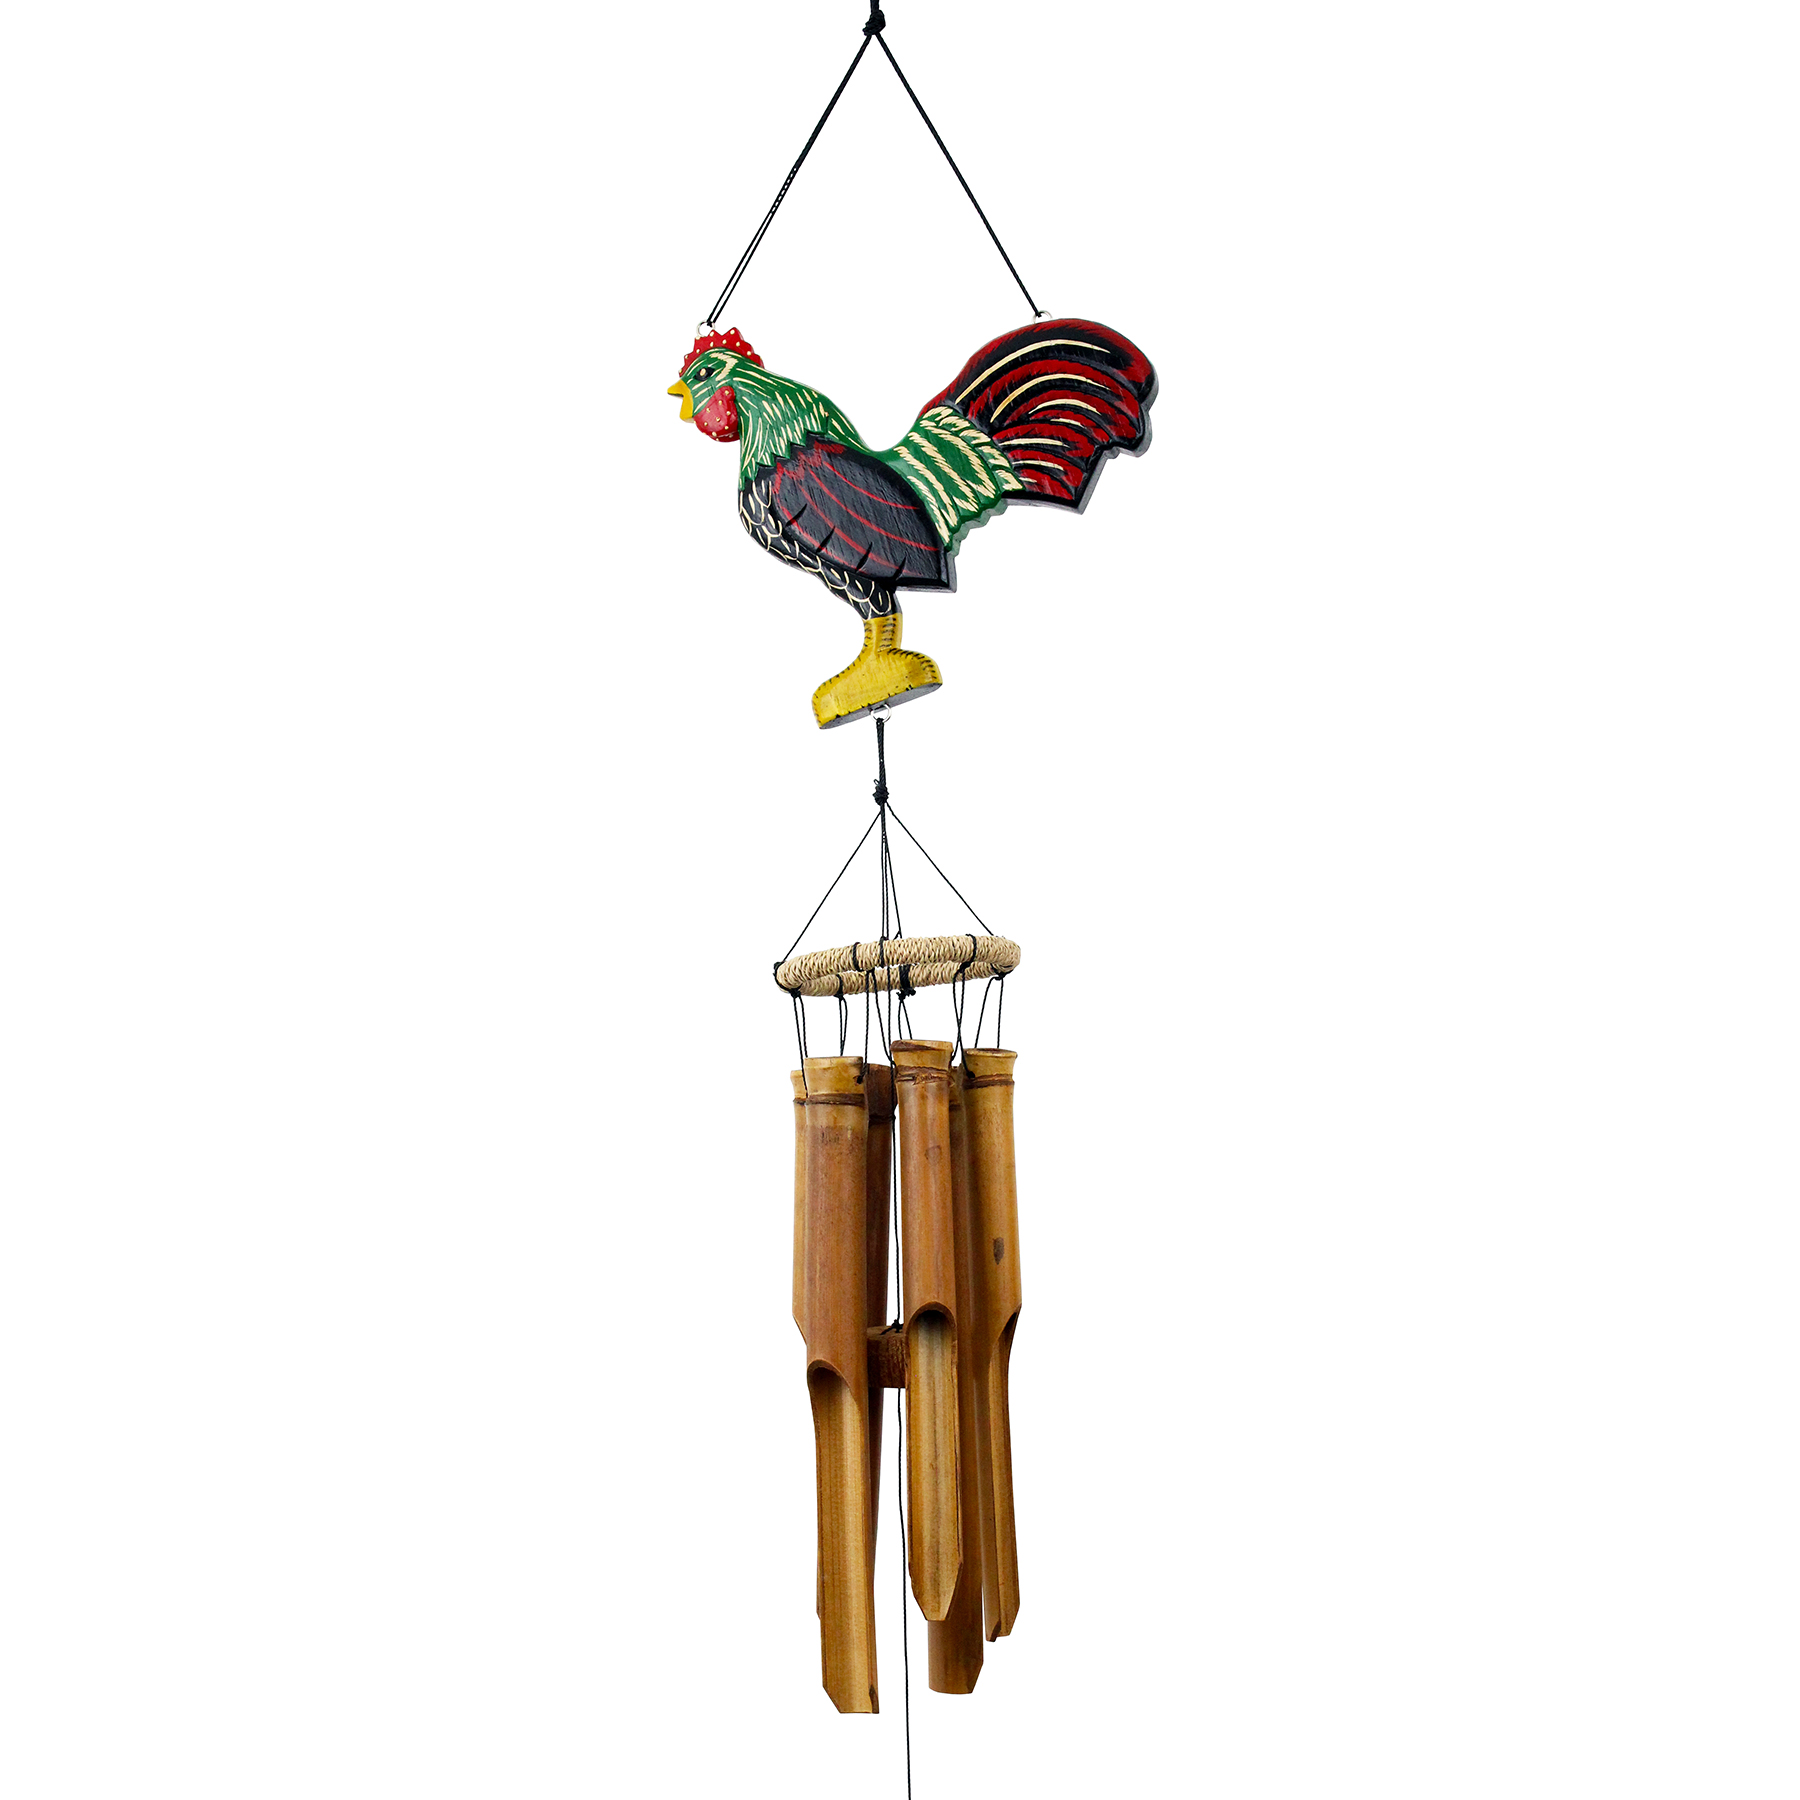 146L - Lucky Rooster Silhouette Wind Chime